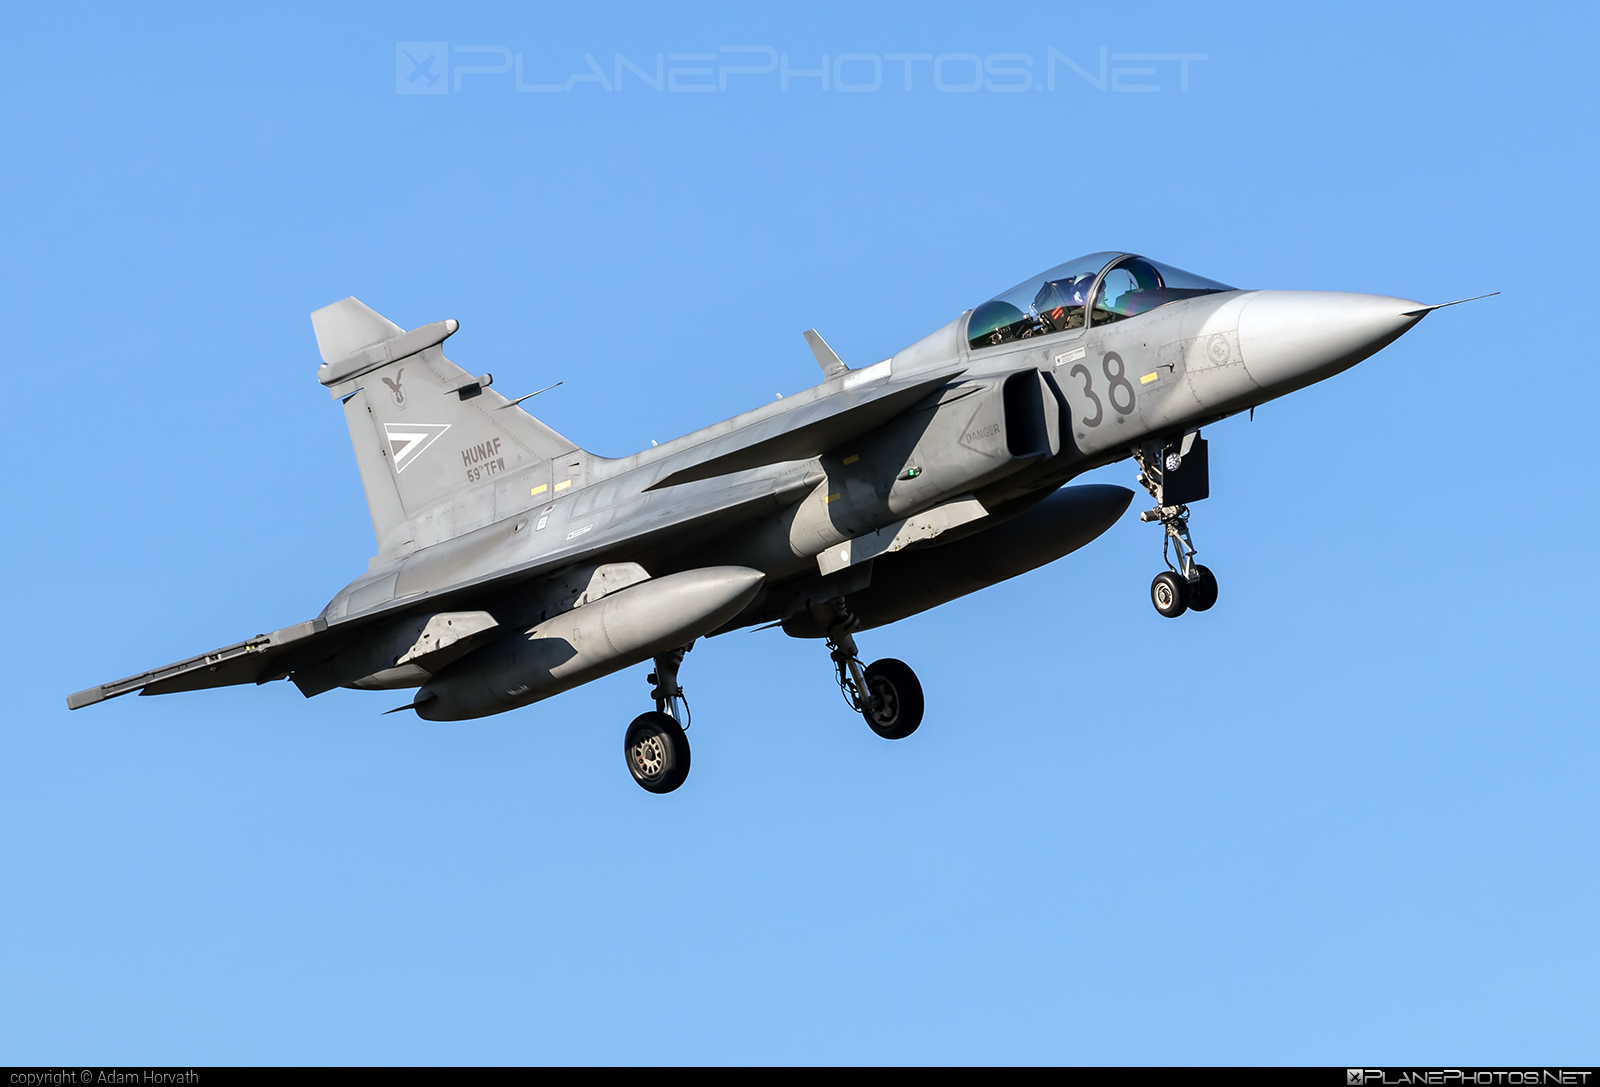 Saab JAS 39C Gripen - 38 operated by Magyar Légierő (Hungarian Air Force) #gripen #hungarianairforce #jas39 #jas39c #jas39gripen #magyarlegiero #saab